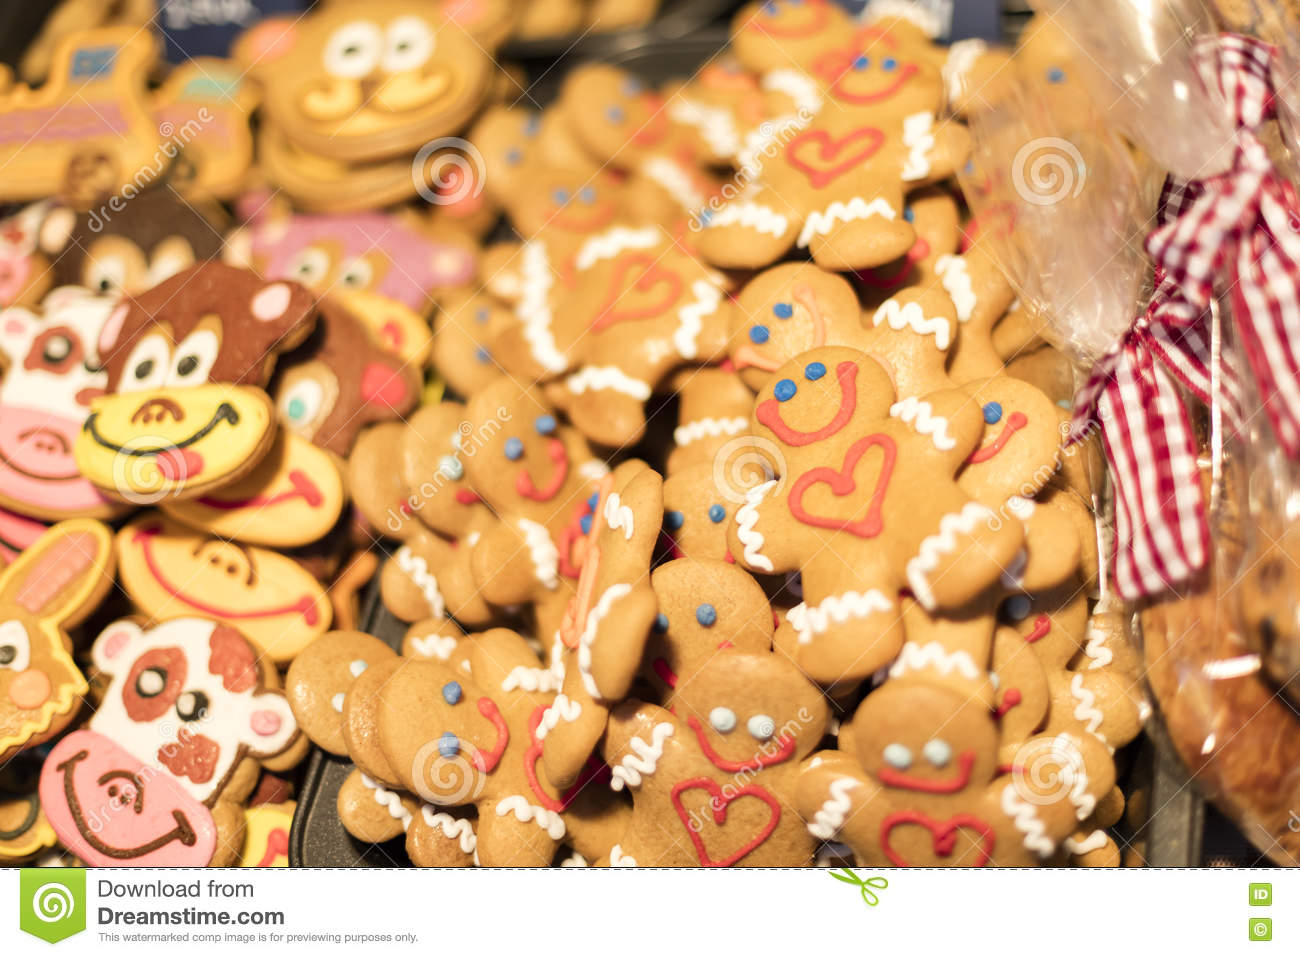 March  traditional gingerbread baked goods at